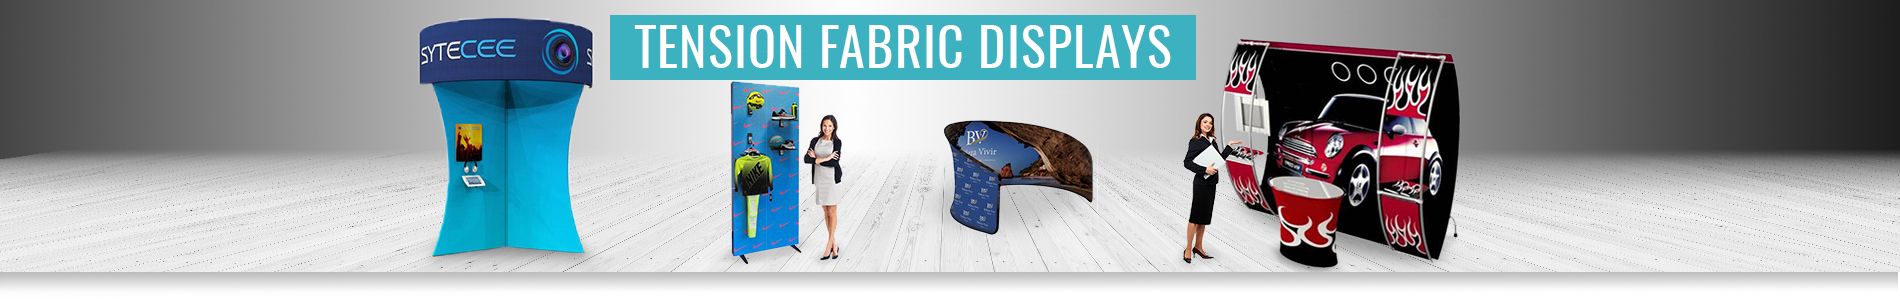 Tension Fabric Displays Systems